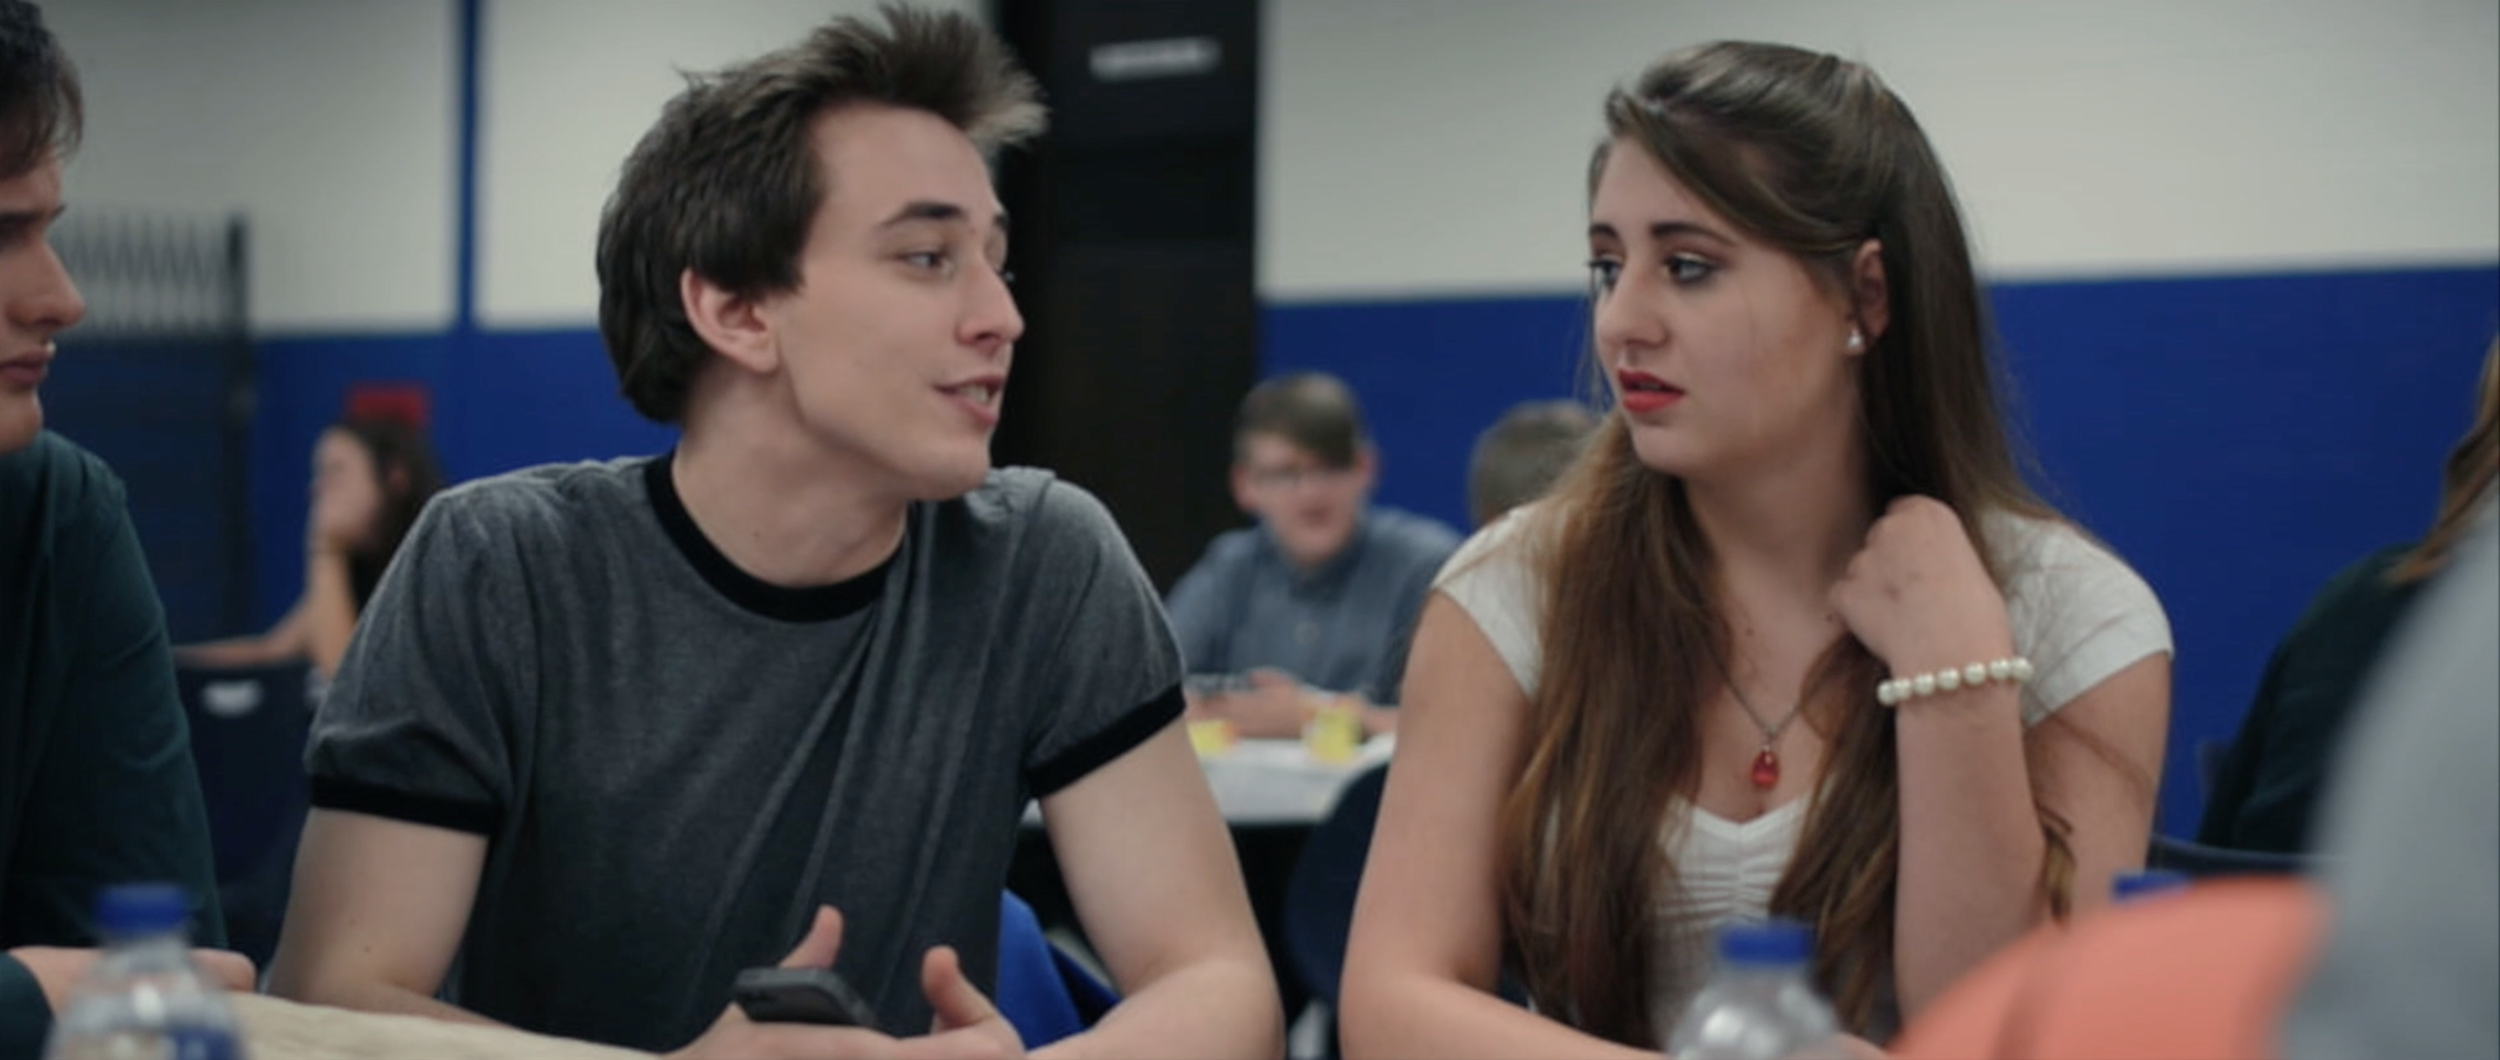 Tension builds between Evan Moore (CK Steele) and his girlfriend Addison McKnight (Haley Calhoun) in  Sincerely, Me .